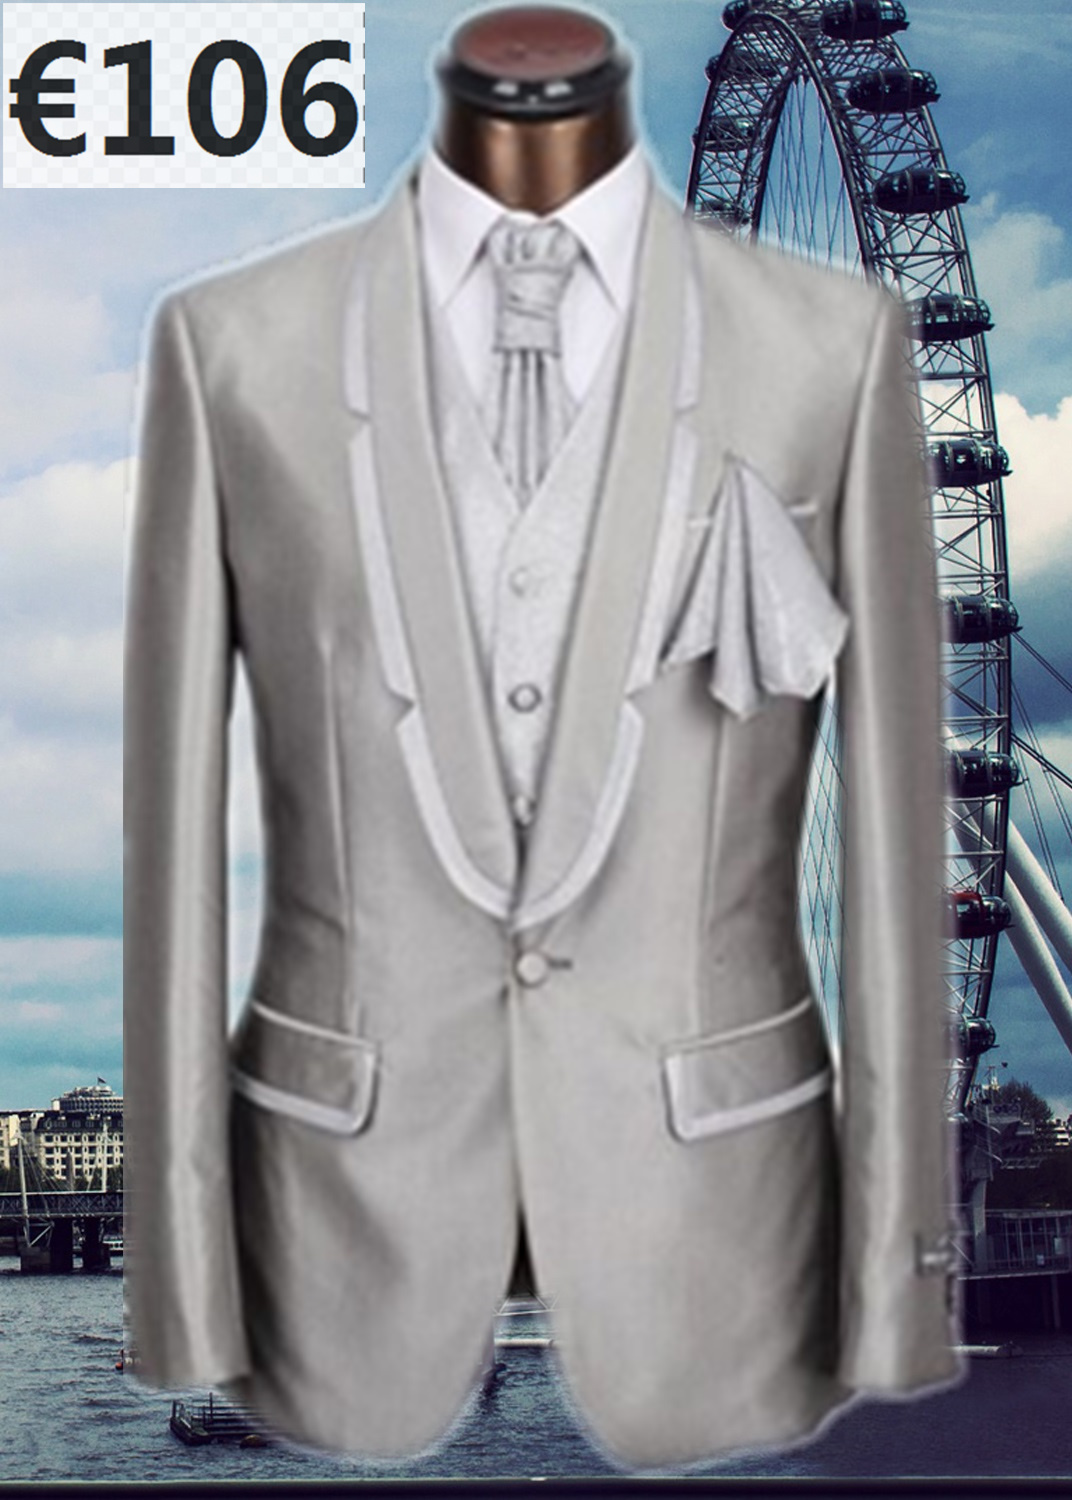 costume 3 pieces armani - Costume Homme 3 Pieces Mariage